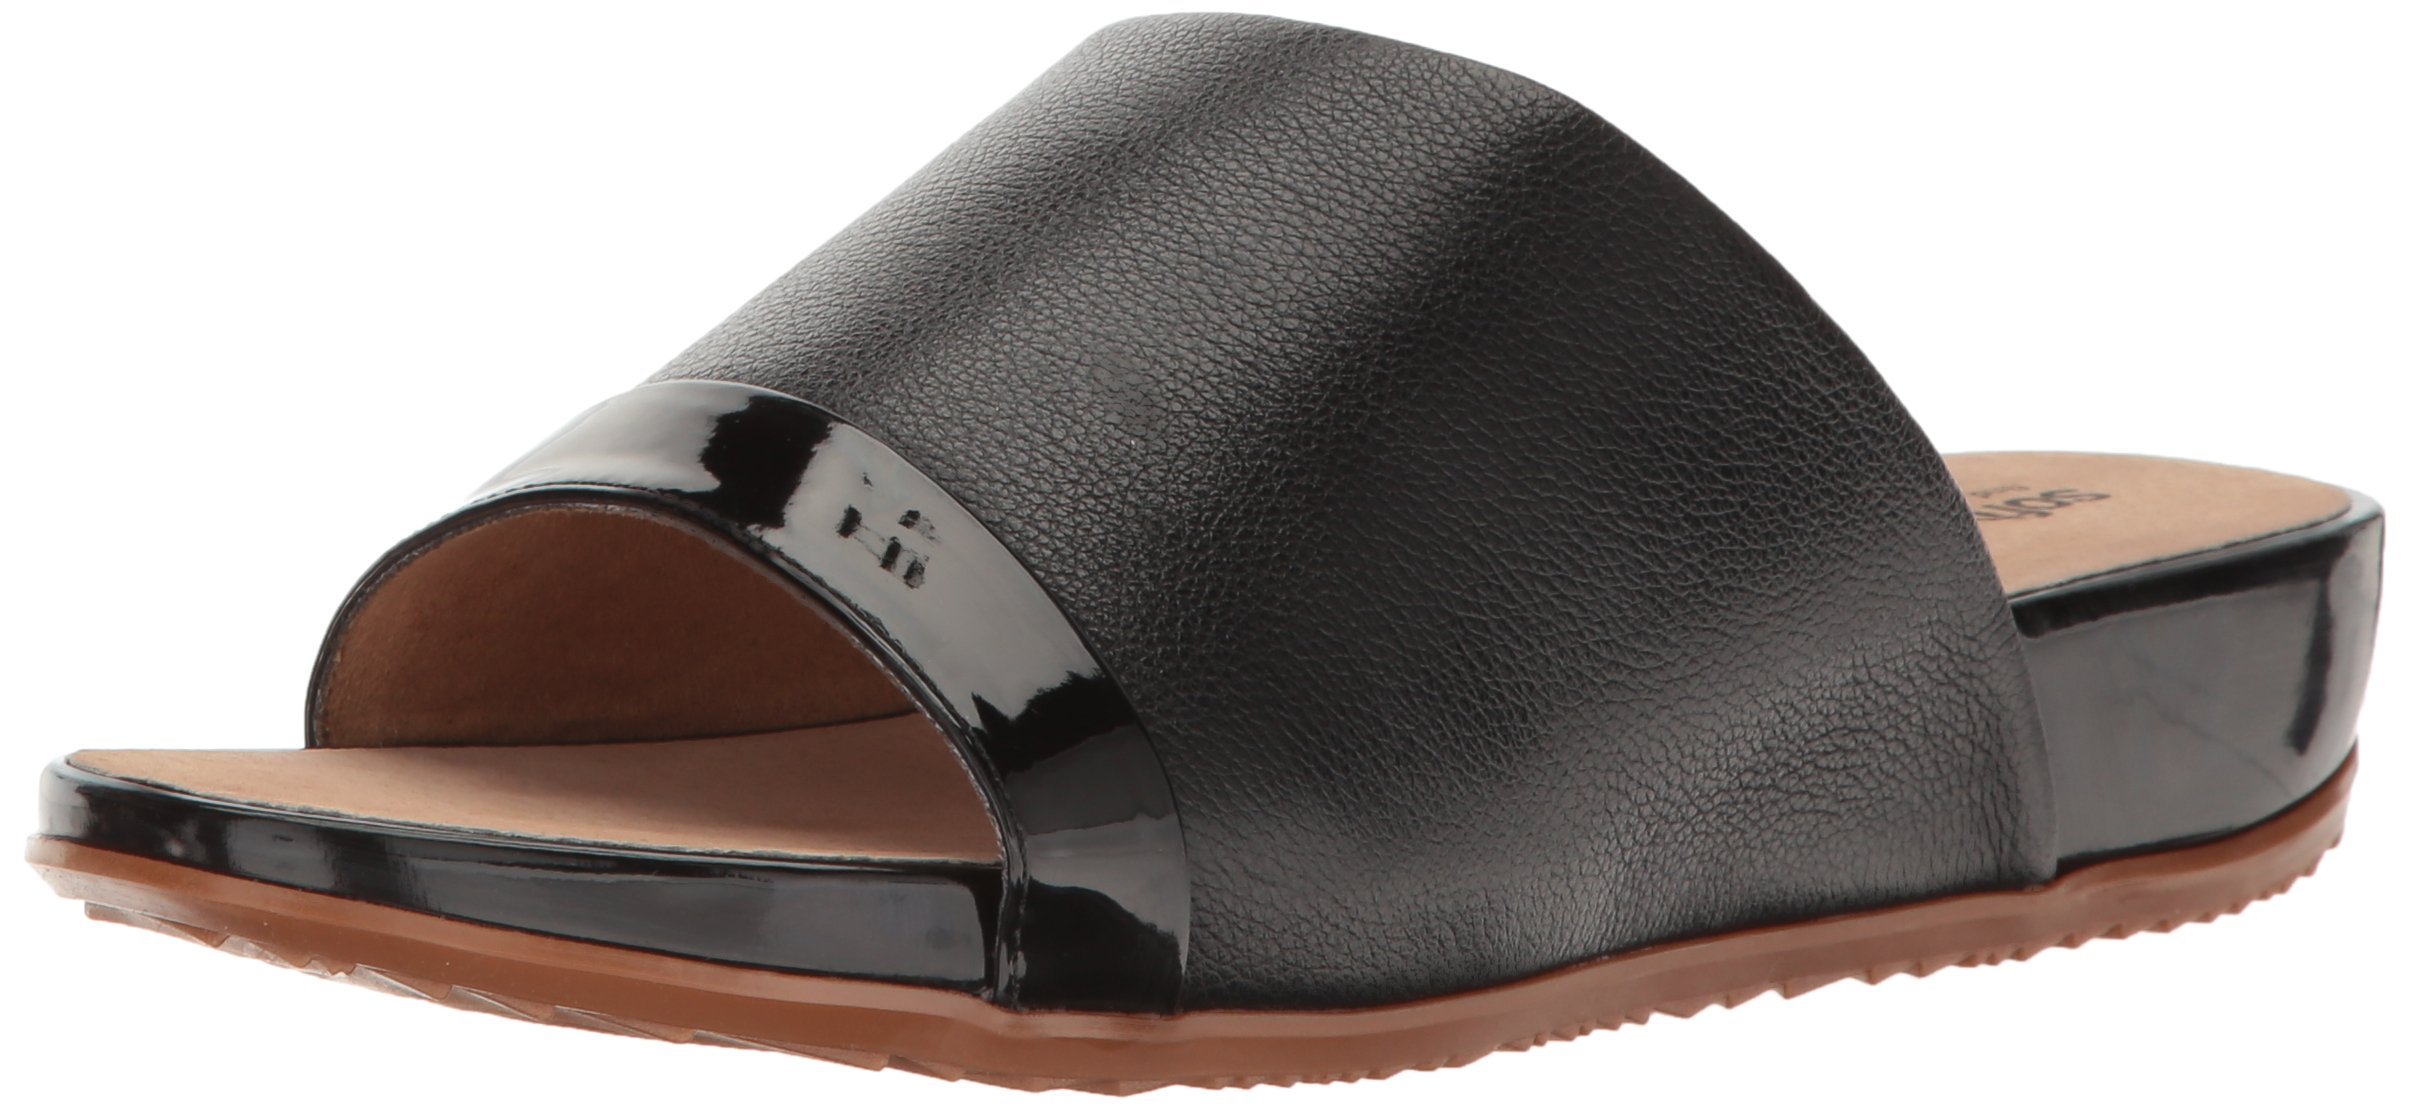 SoftWalk Women's Del Mar Wedge Slide Sandal, Black, 9 M US by SoftWalk (Image #1)